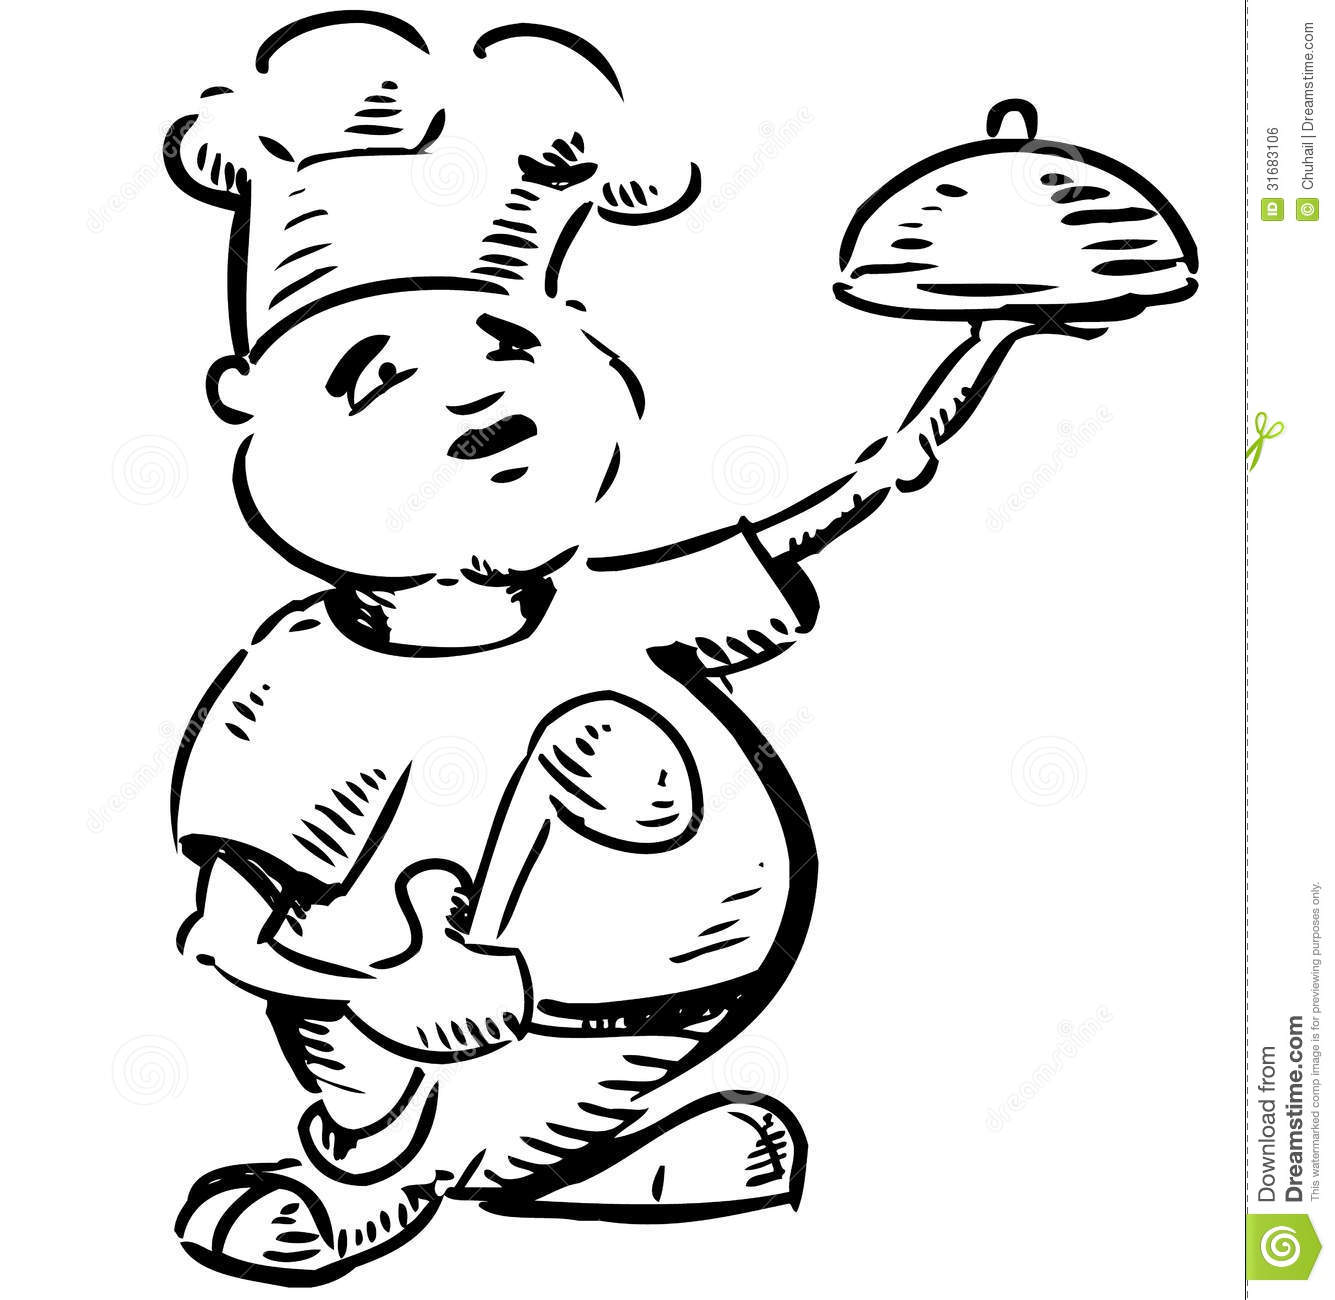 chef with tray of food in hand royalty free stock image empty lunch tray clipart hot lunch tray clipart